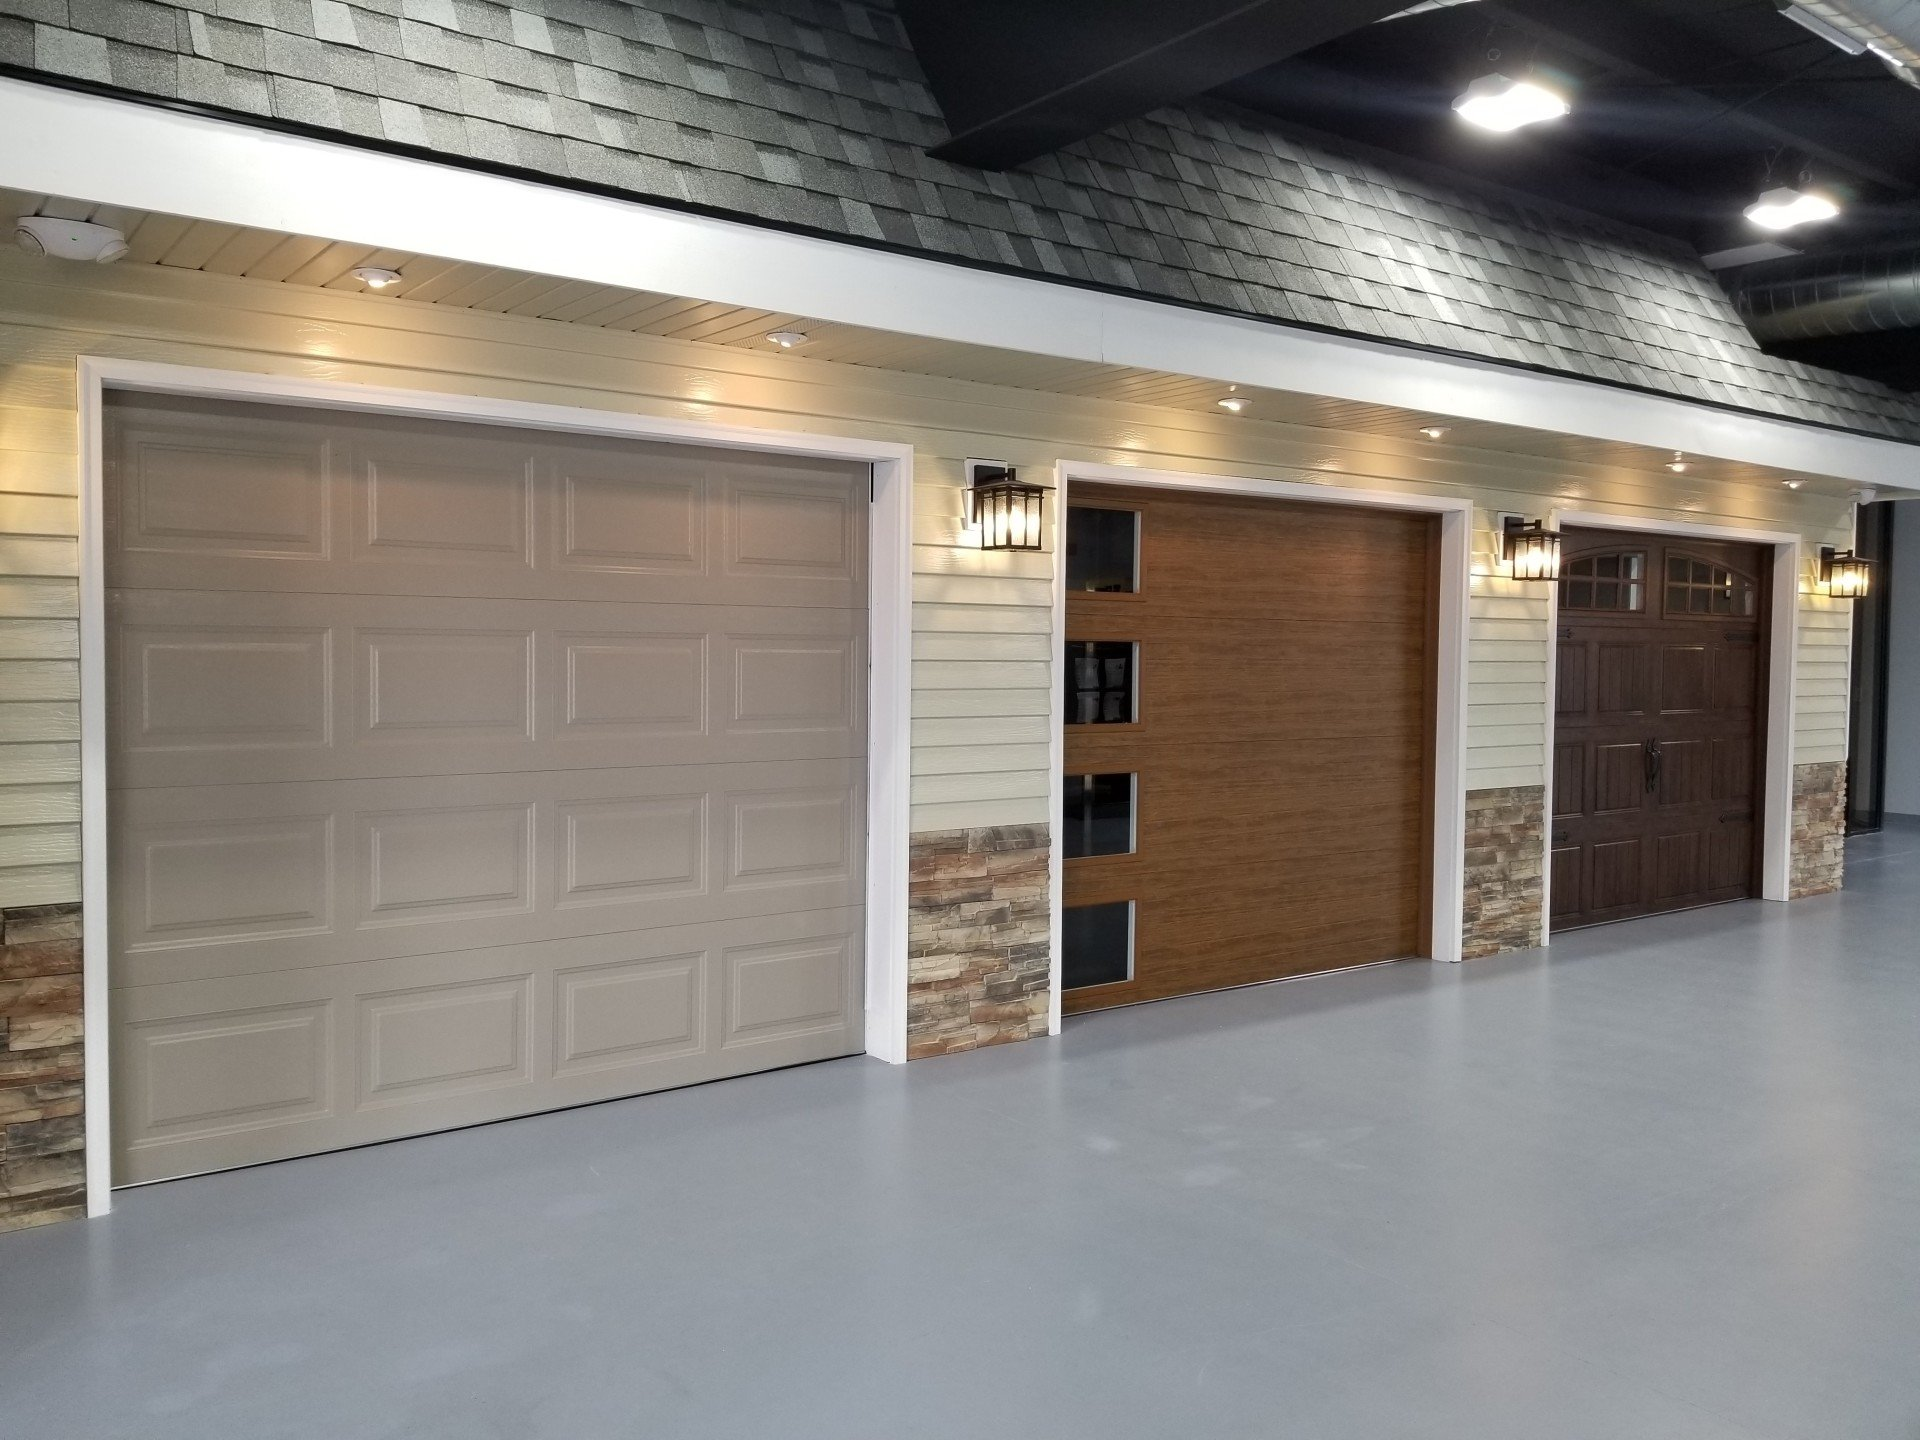 Garage Door Repair Jackson Mi Milwaukee Garage Doors Milwaukee Garage Door Repair Waukesha